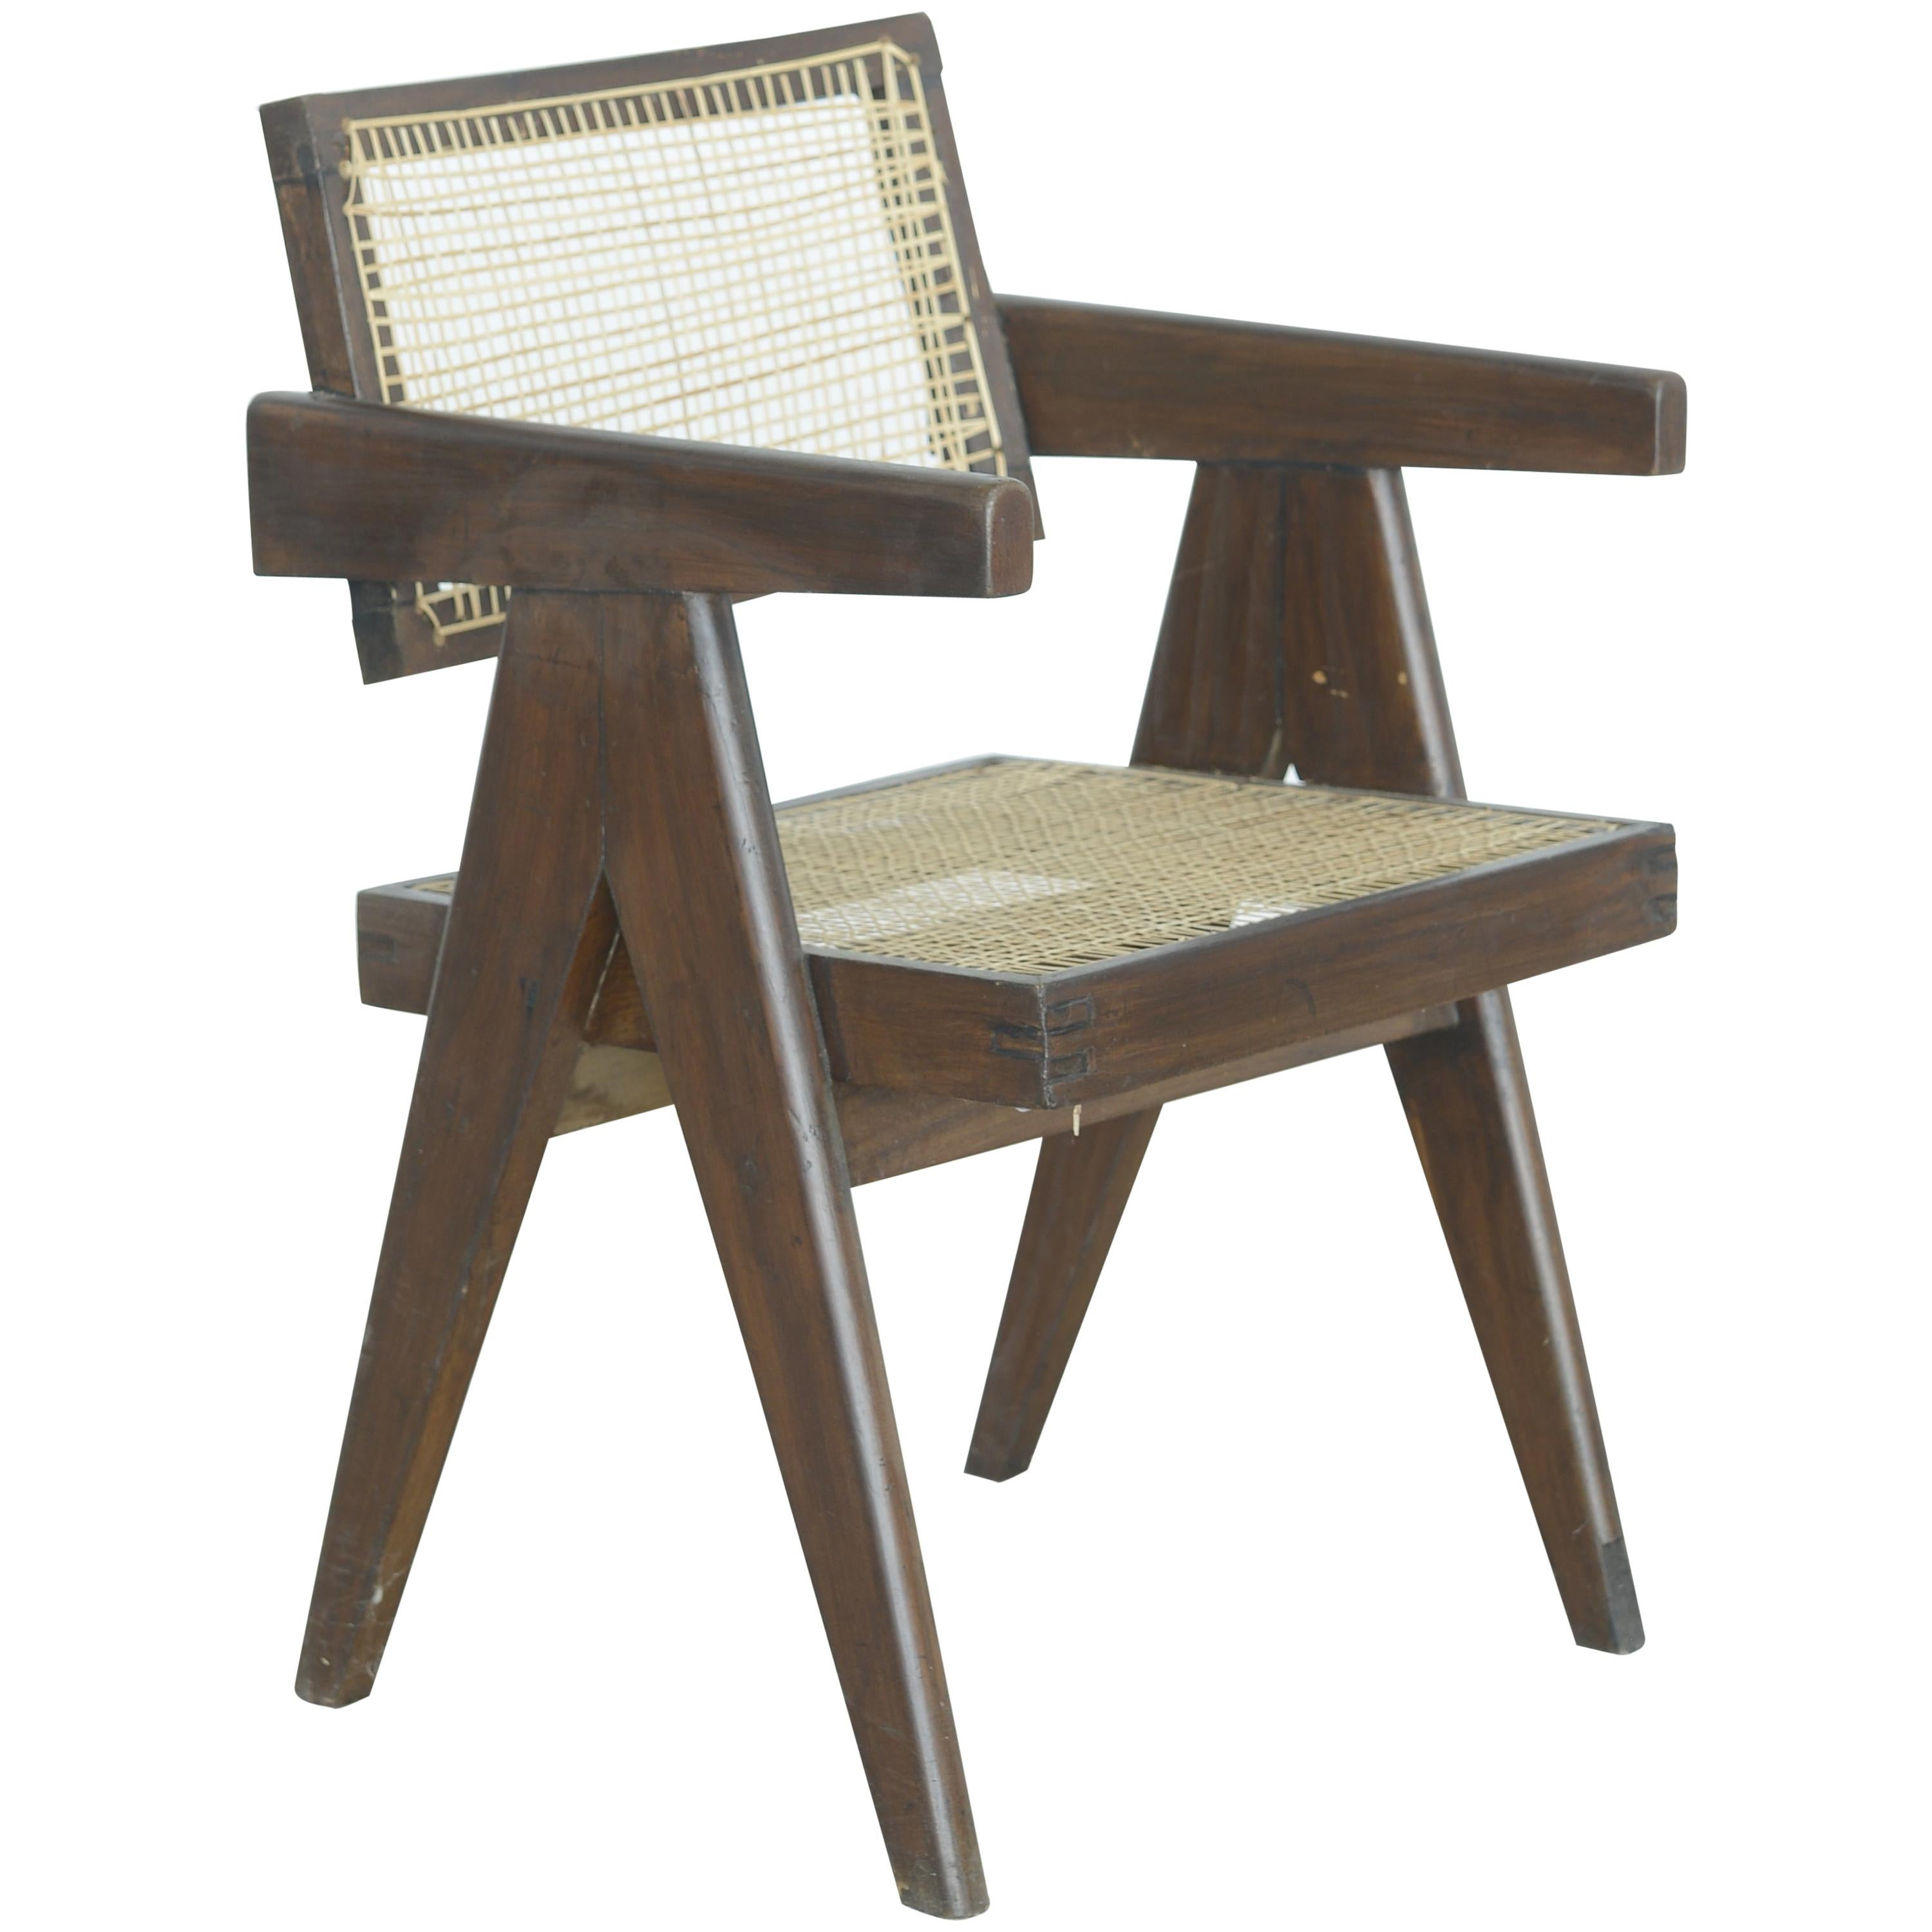 Pierre Jeanneret Office Cane Chair | Authentic Mid-Century Modern PJ-SI-28-A